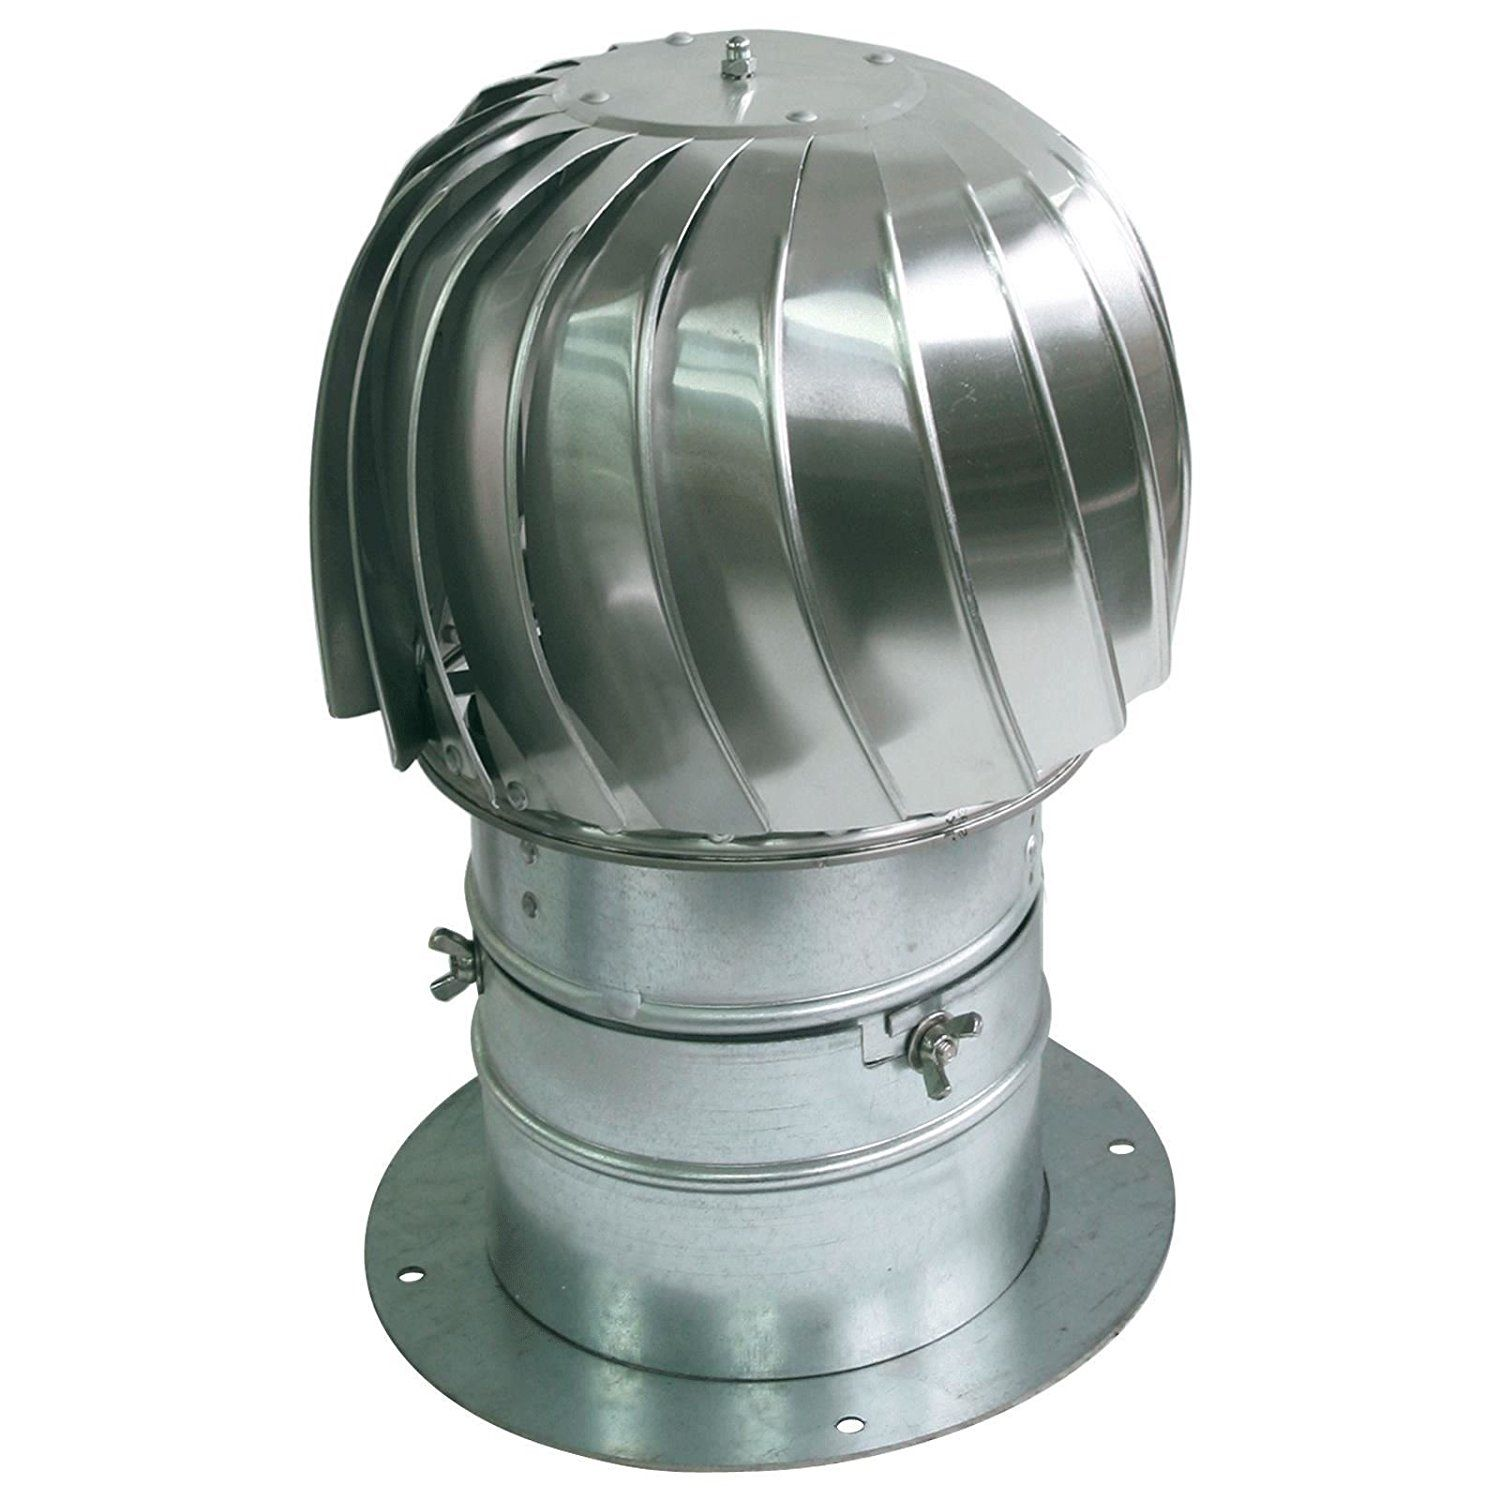 Spinning Chimney Cowl Aluminum Downdraught Ventilation With Extra Collar 200mm See This Great Product Chimney Cowls Roof Cap Aluminum